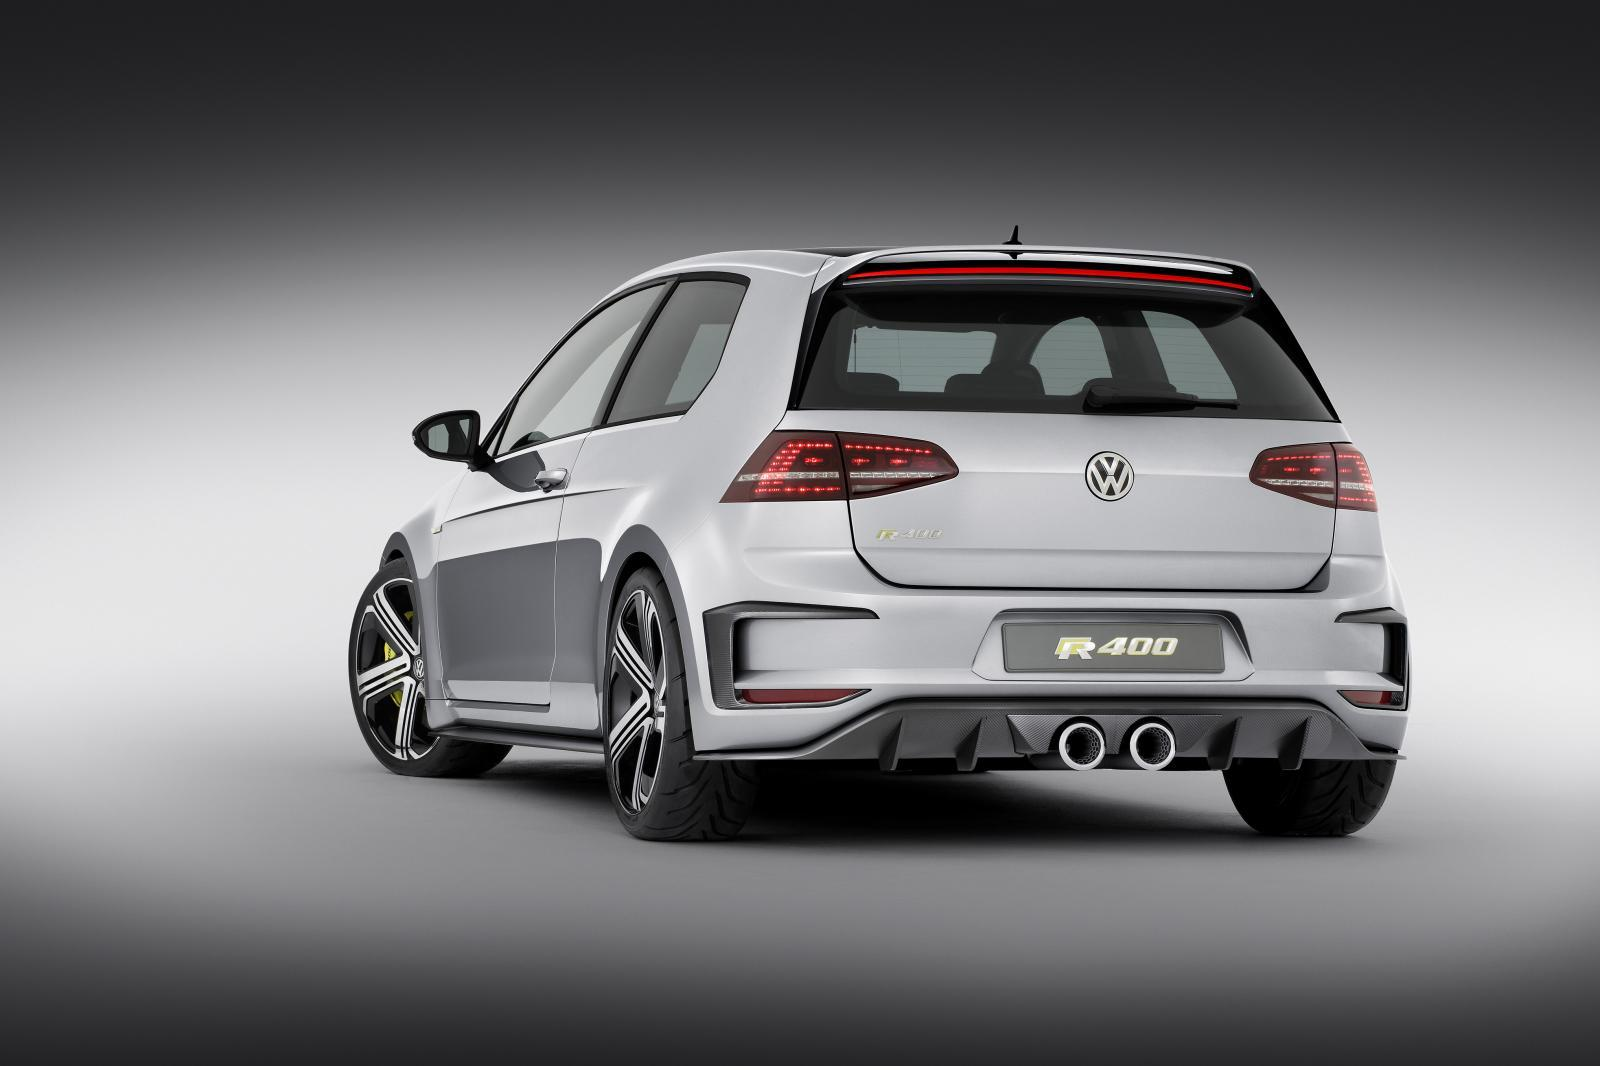 volkswagen-golf-r400_03